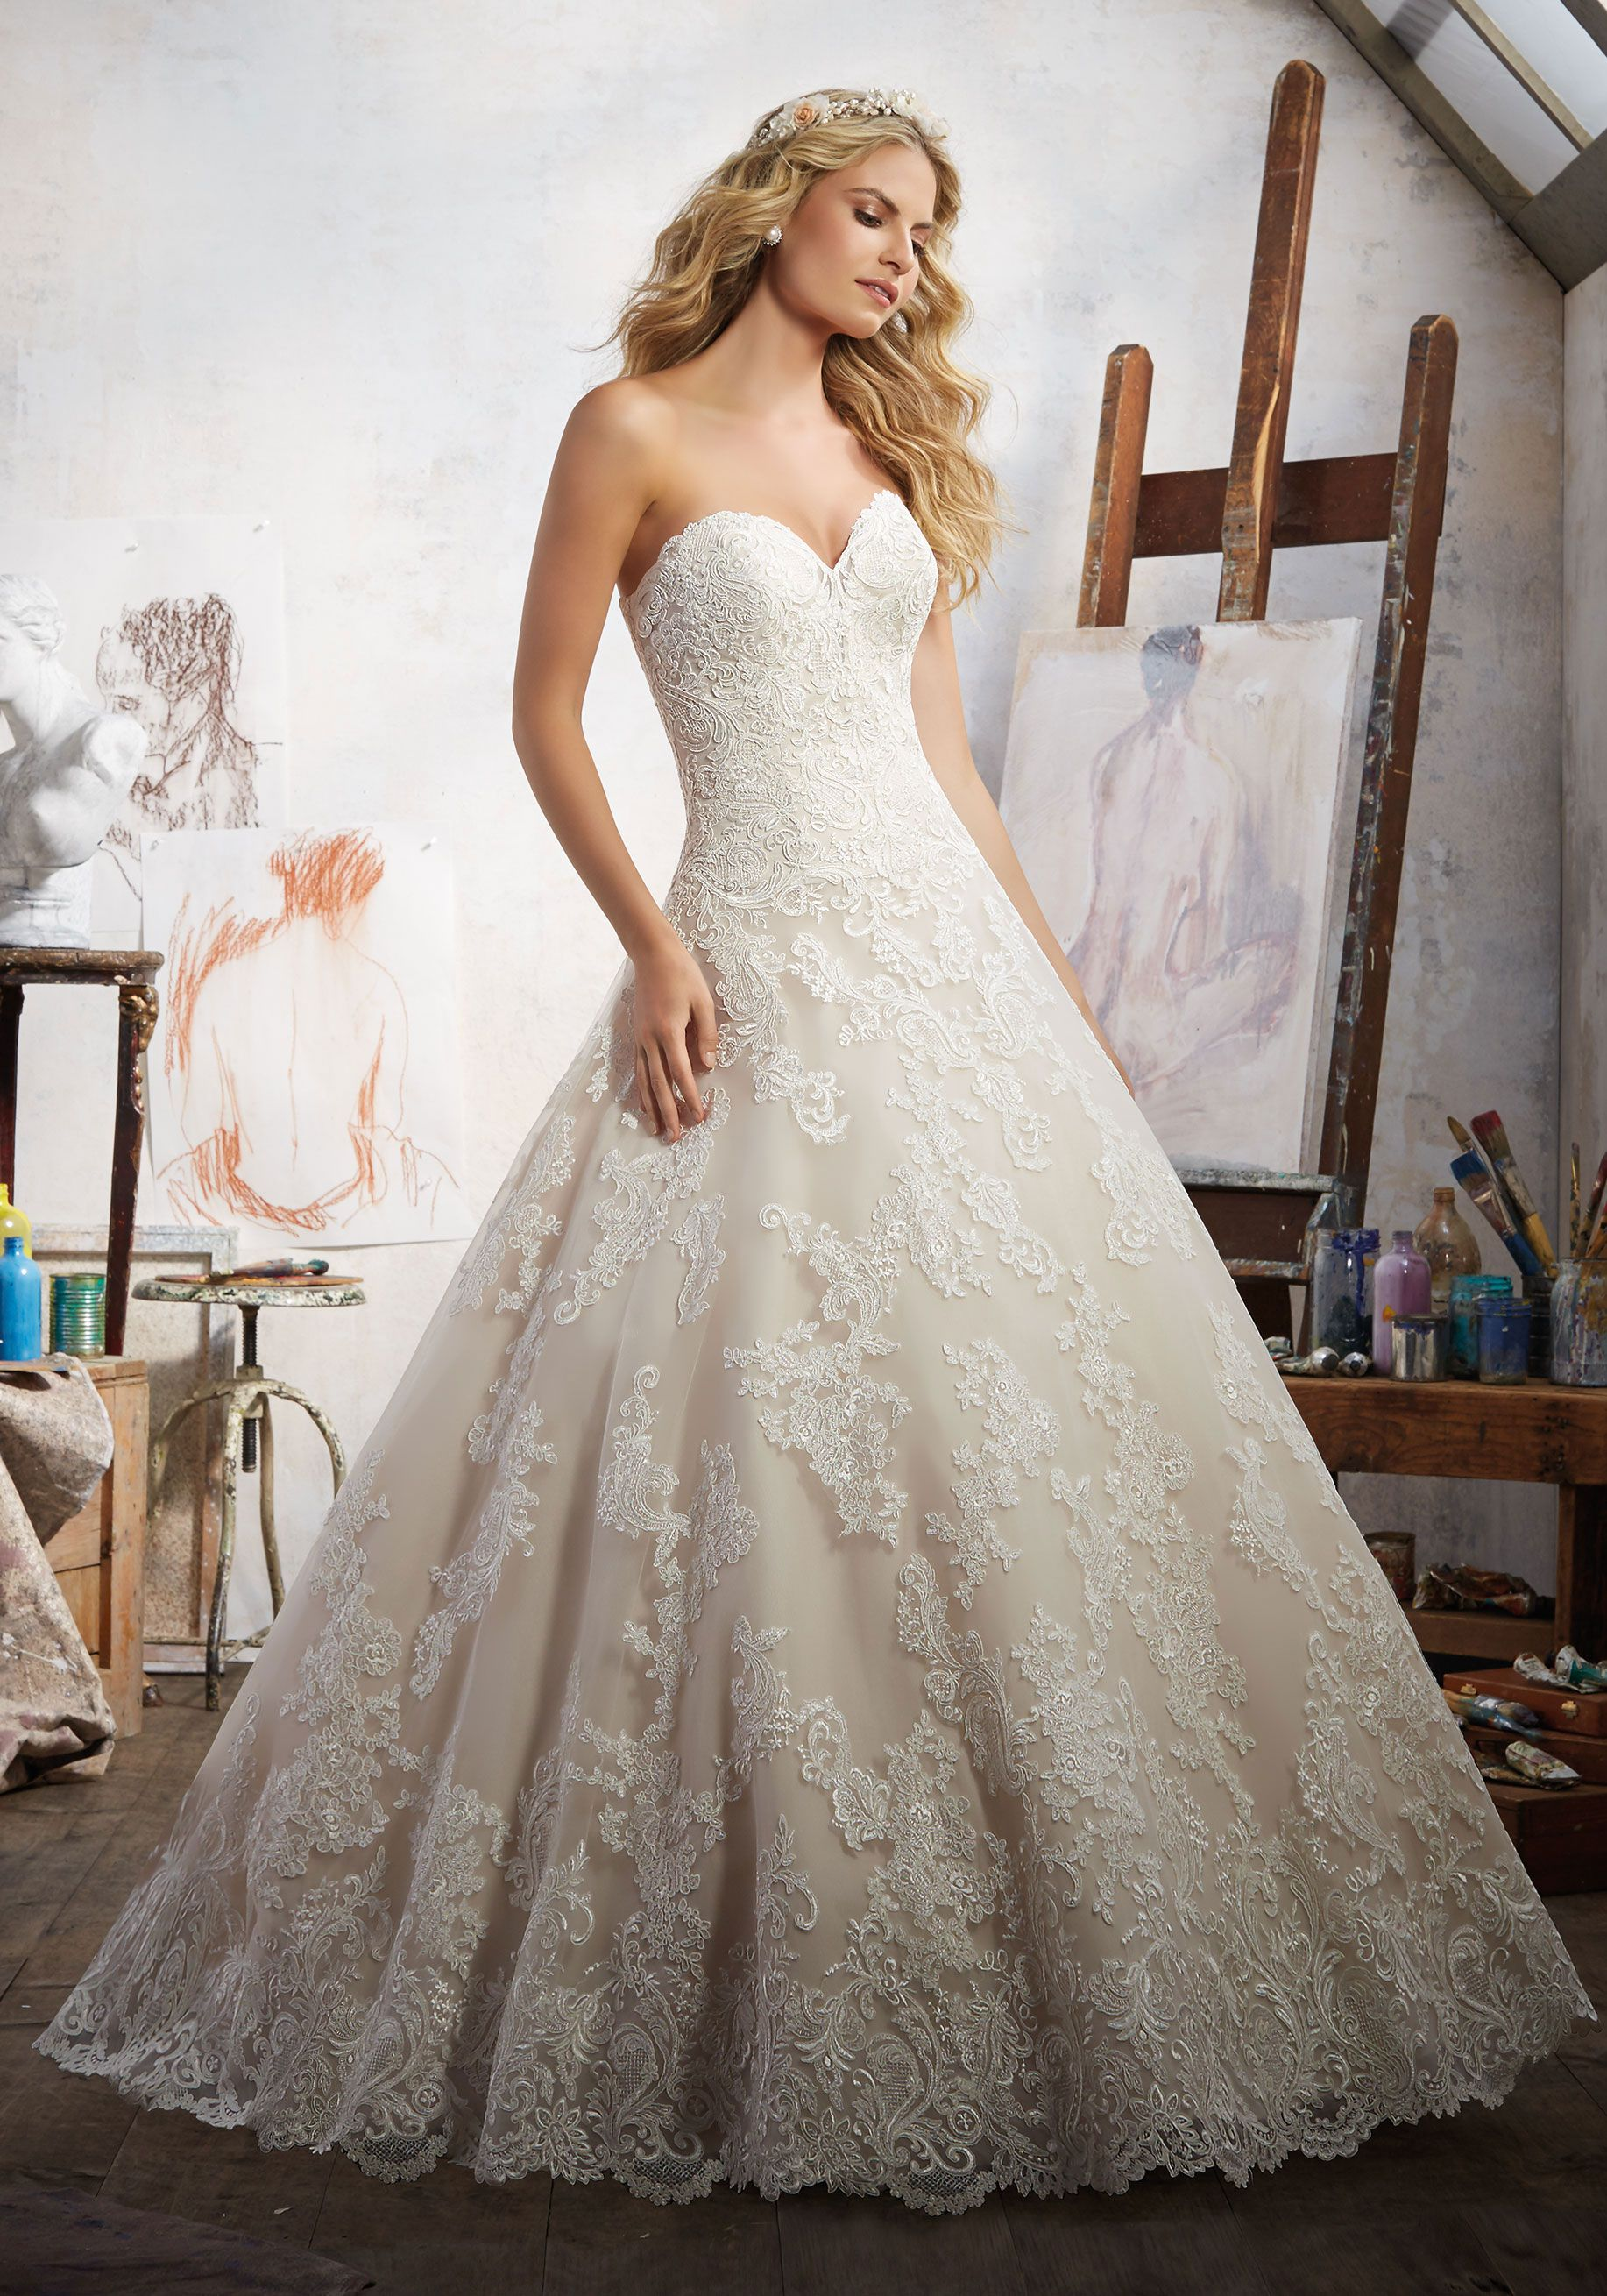 Elegant Morilee by Madeline Gardner uMagdalena u Alen on Lace Appliqu s Accent this Classic Lace Bridal